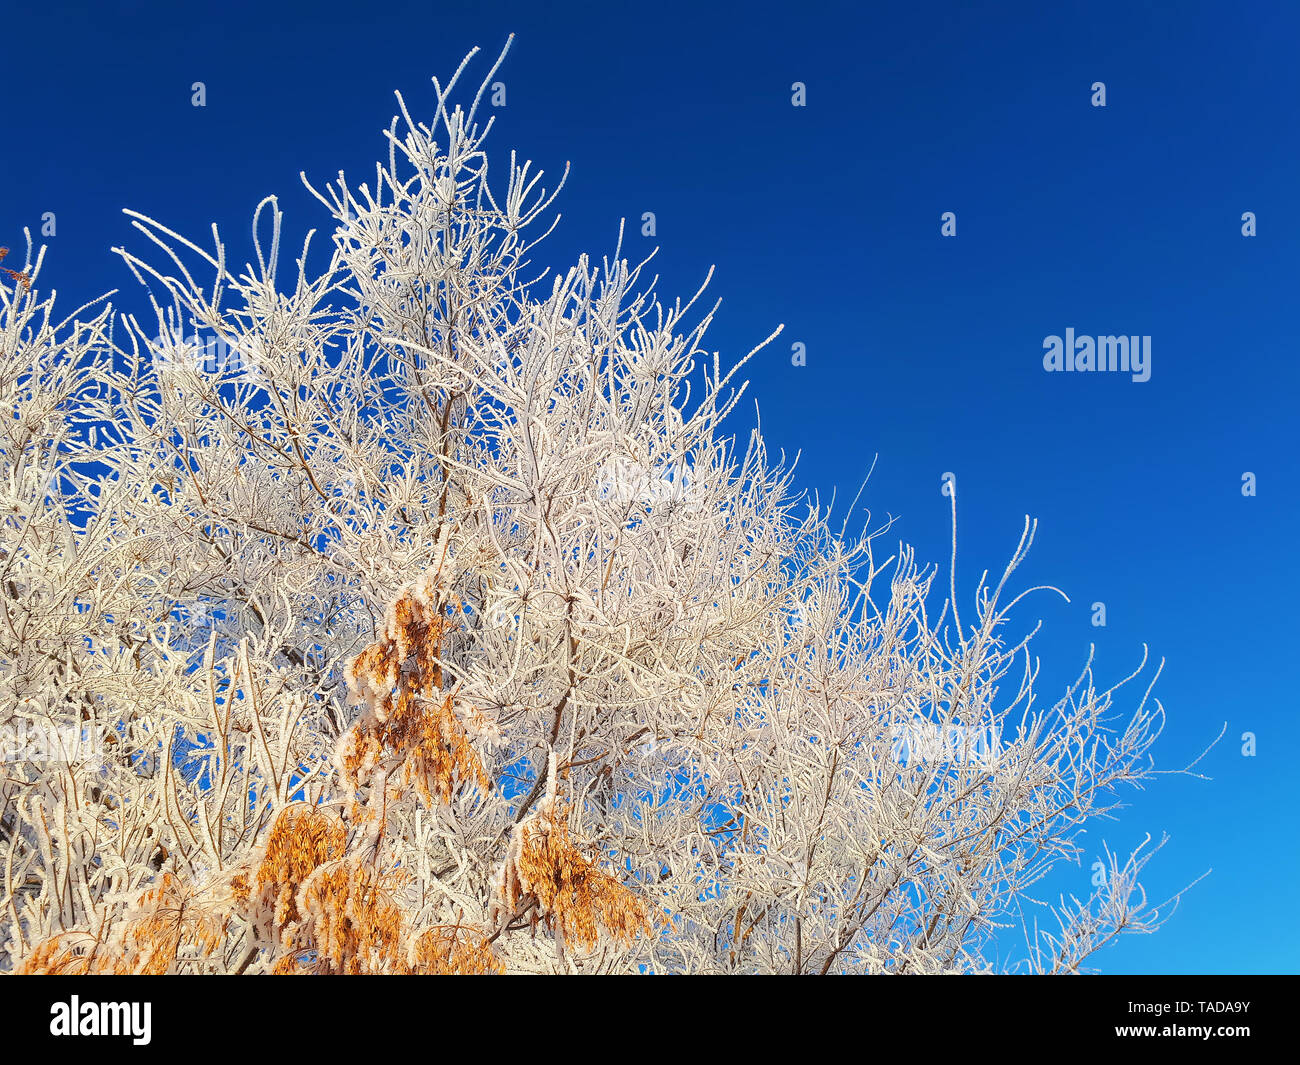 The branches and gold seeds of an ash-tree in the frost are thickly wrapped in hoarfrost and illuminated by gentle sunlight against a blue sky. - Stock Image